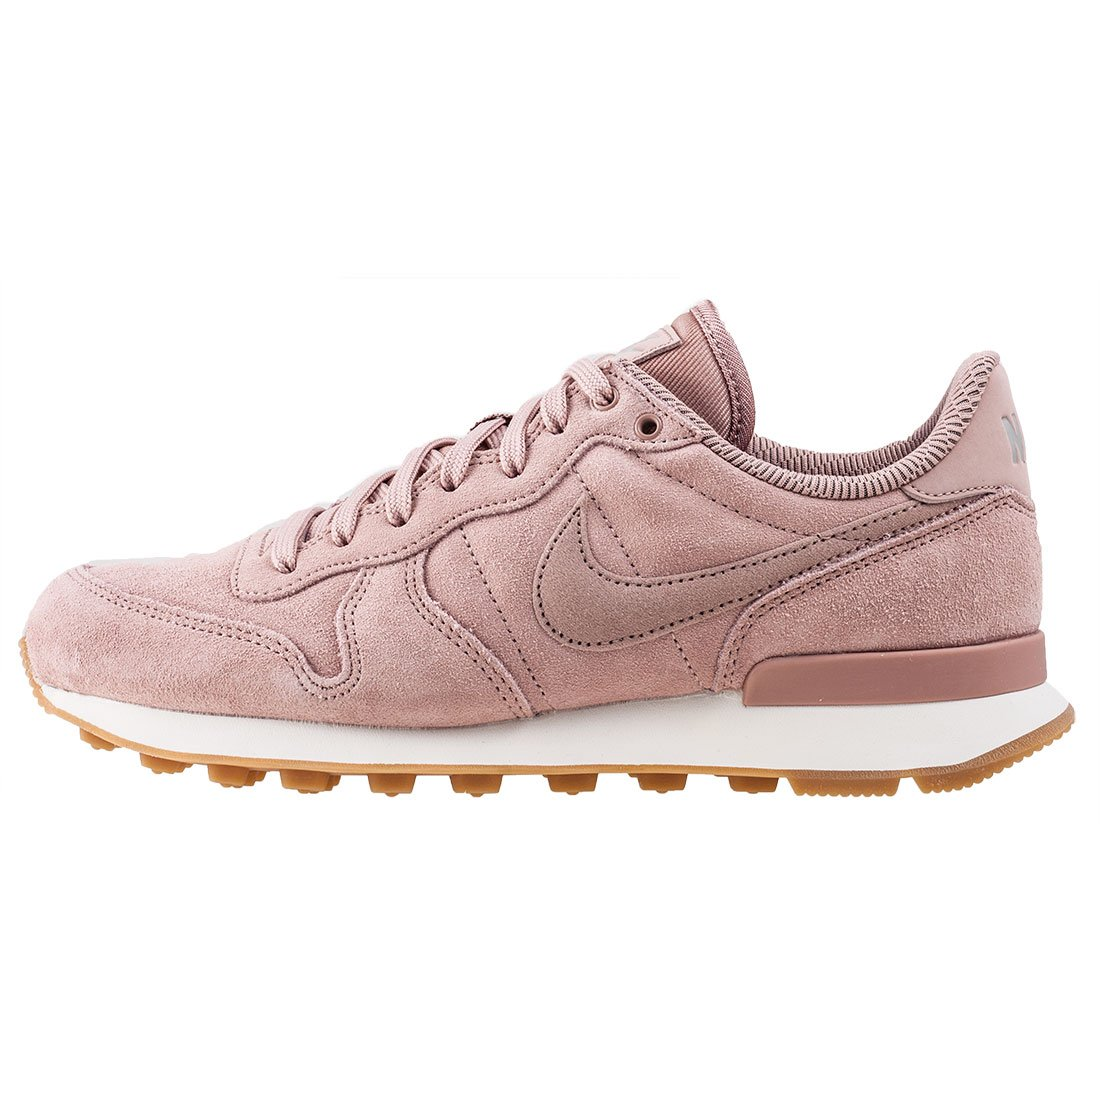 quality products factory outlets best wholesaler Nike Internationalist Se Womens Trainers Pink